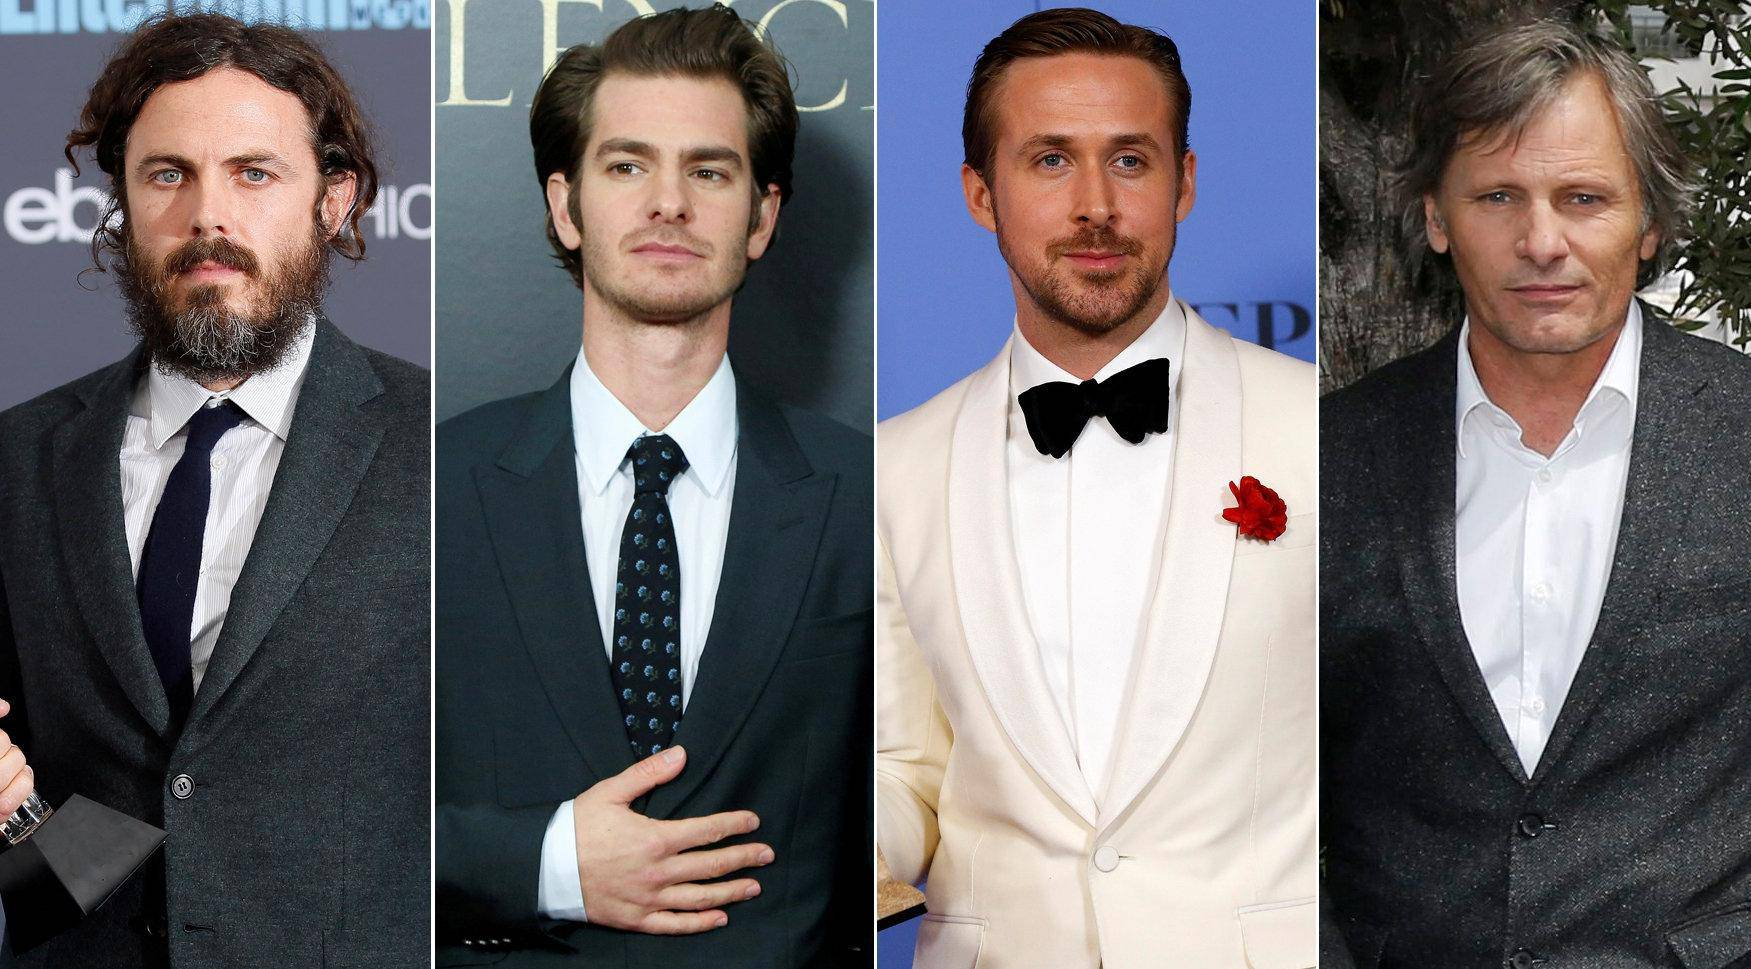 Best actor Oscar nominees for the 89th annual awards Casey Affleck, Andrew Garfield, Ryan Gosling, Viggo Mortensen and Denzel Washington